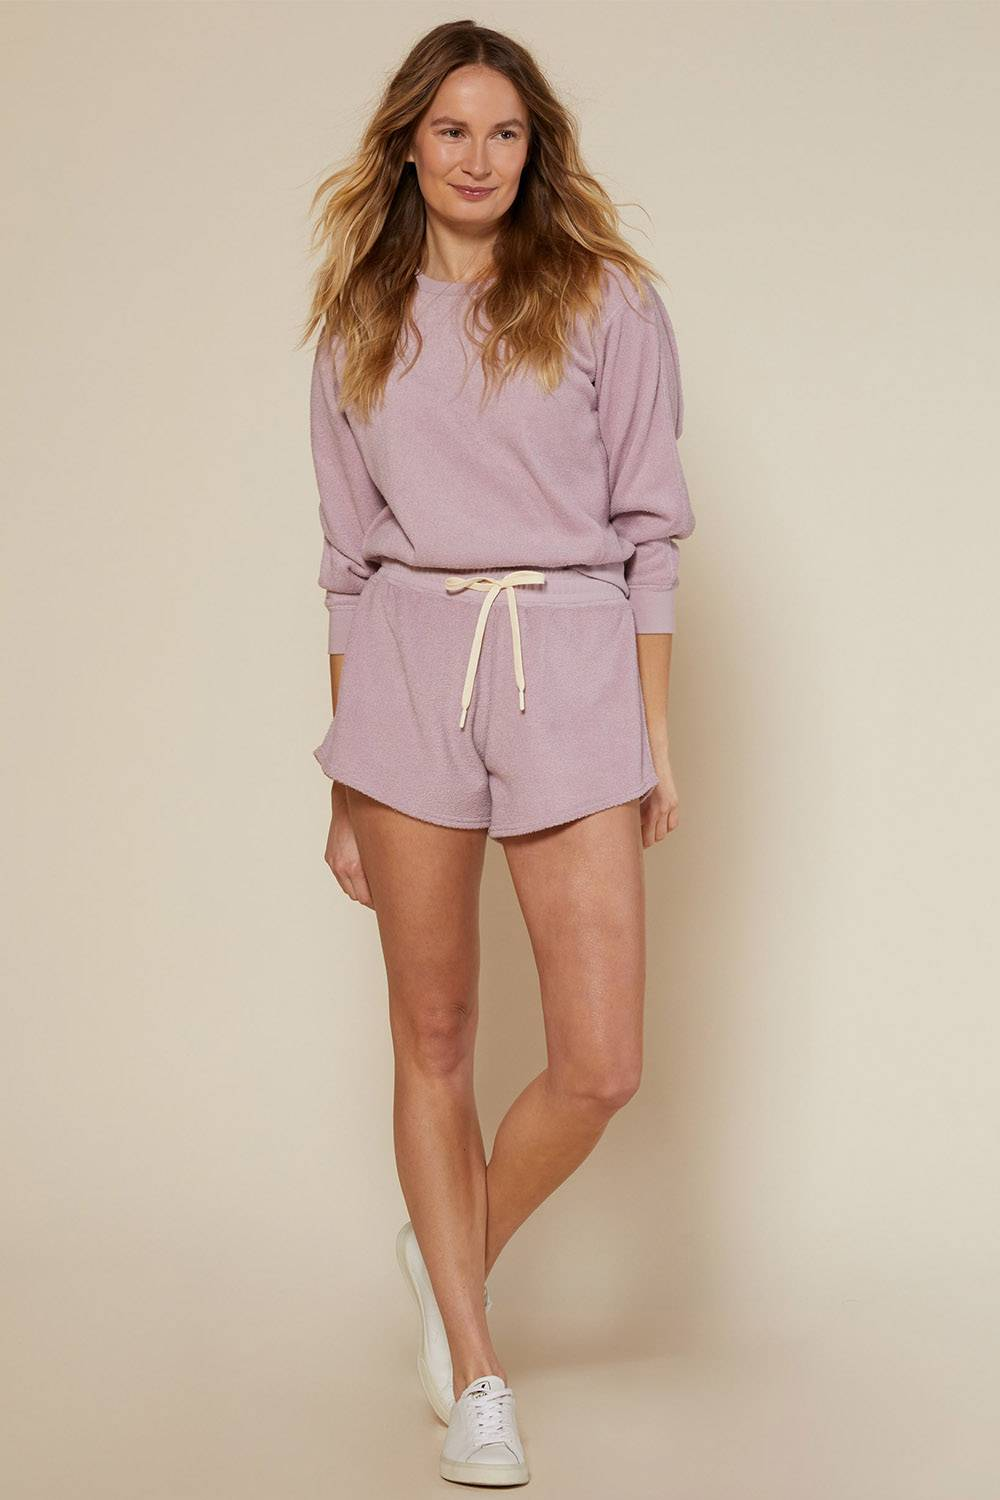 outerknown cheap cotton pajama made in usa